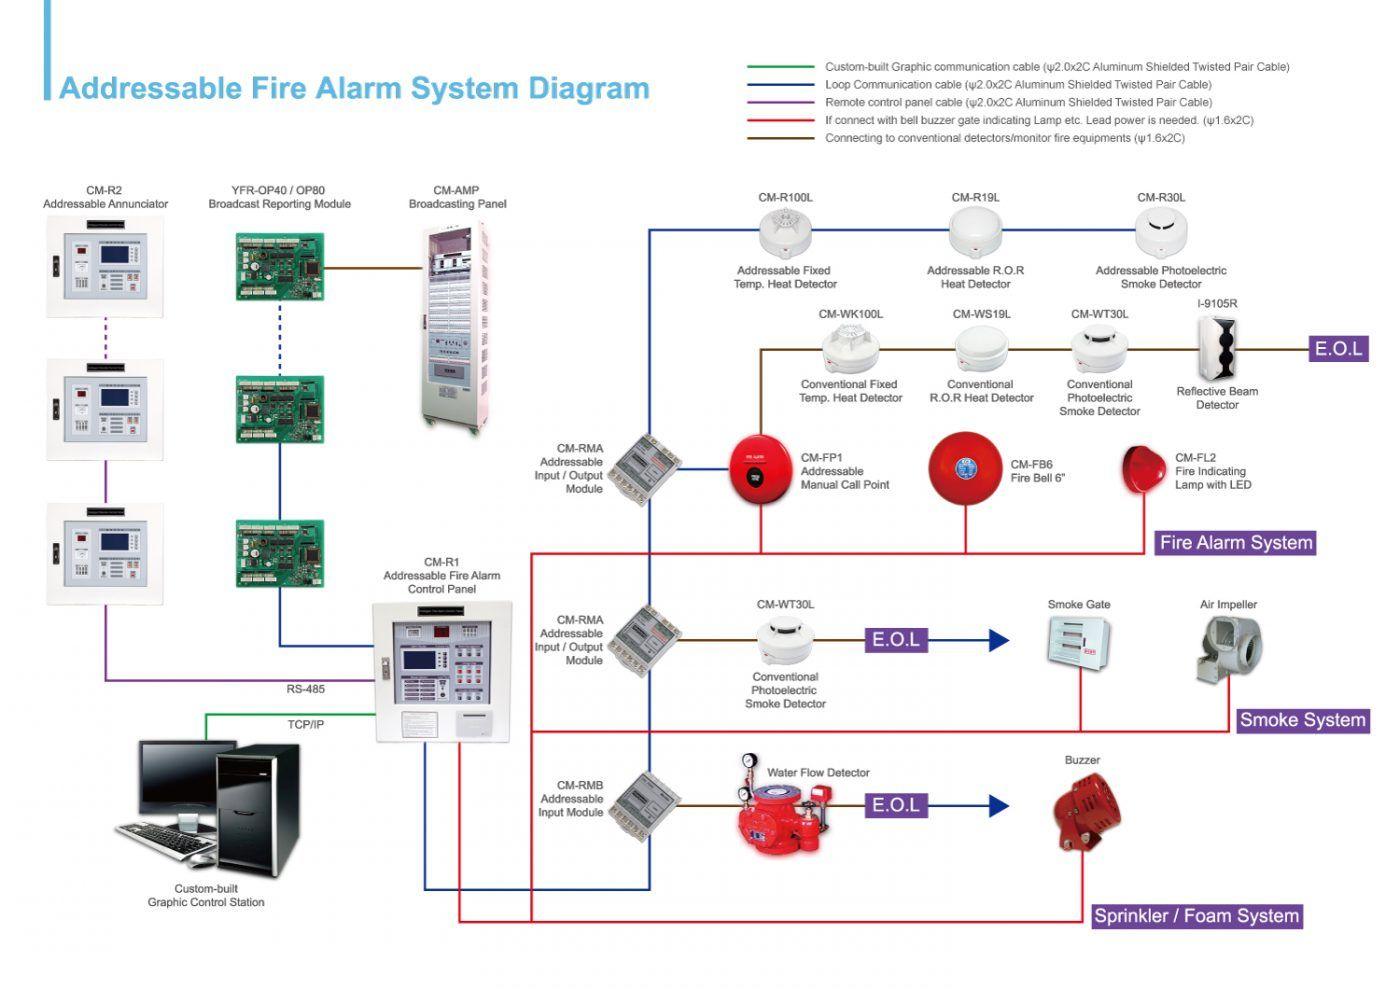 Addressable Fire Alarm System Wiring Diagram Download Fire Alarm System Alarm System Fire Alarm